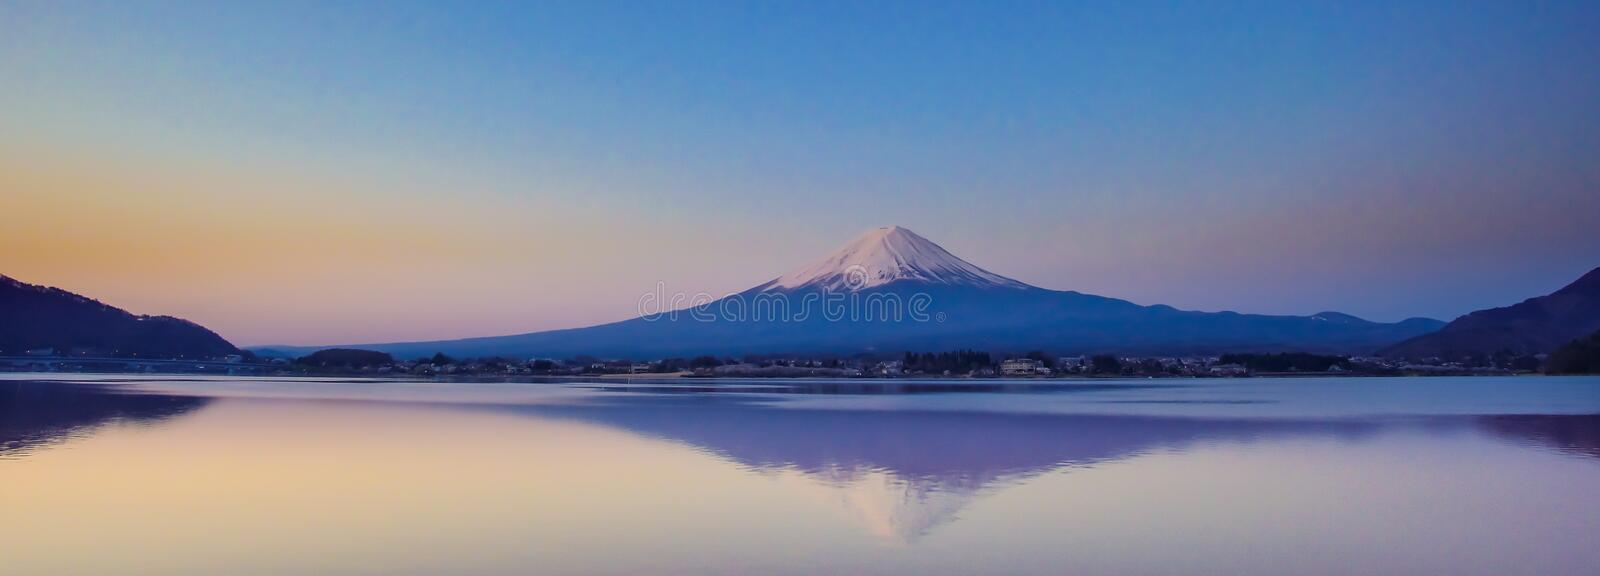 Reflection of Fuji mountain with snow capped and the Moon in the morning Sunrise at Lake kawaguchiko, Yamanashi, Japan. Panorama Reflection of Fuji mountain with stock photography